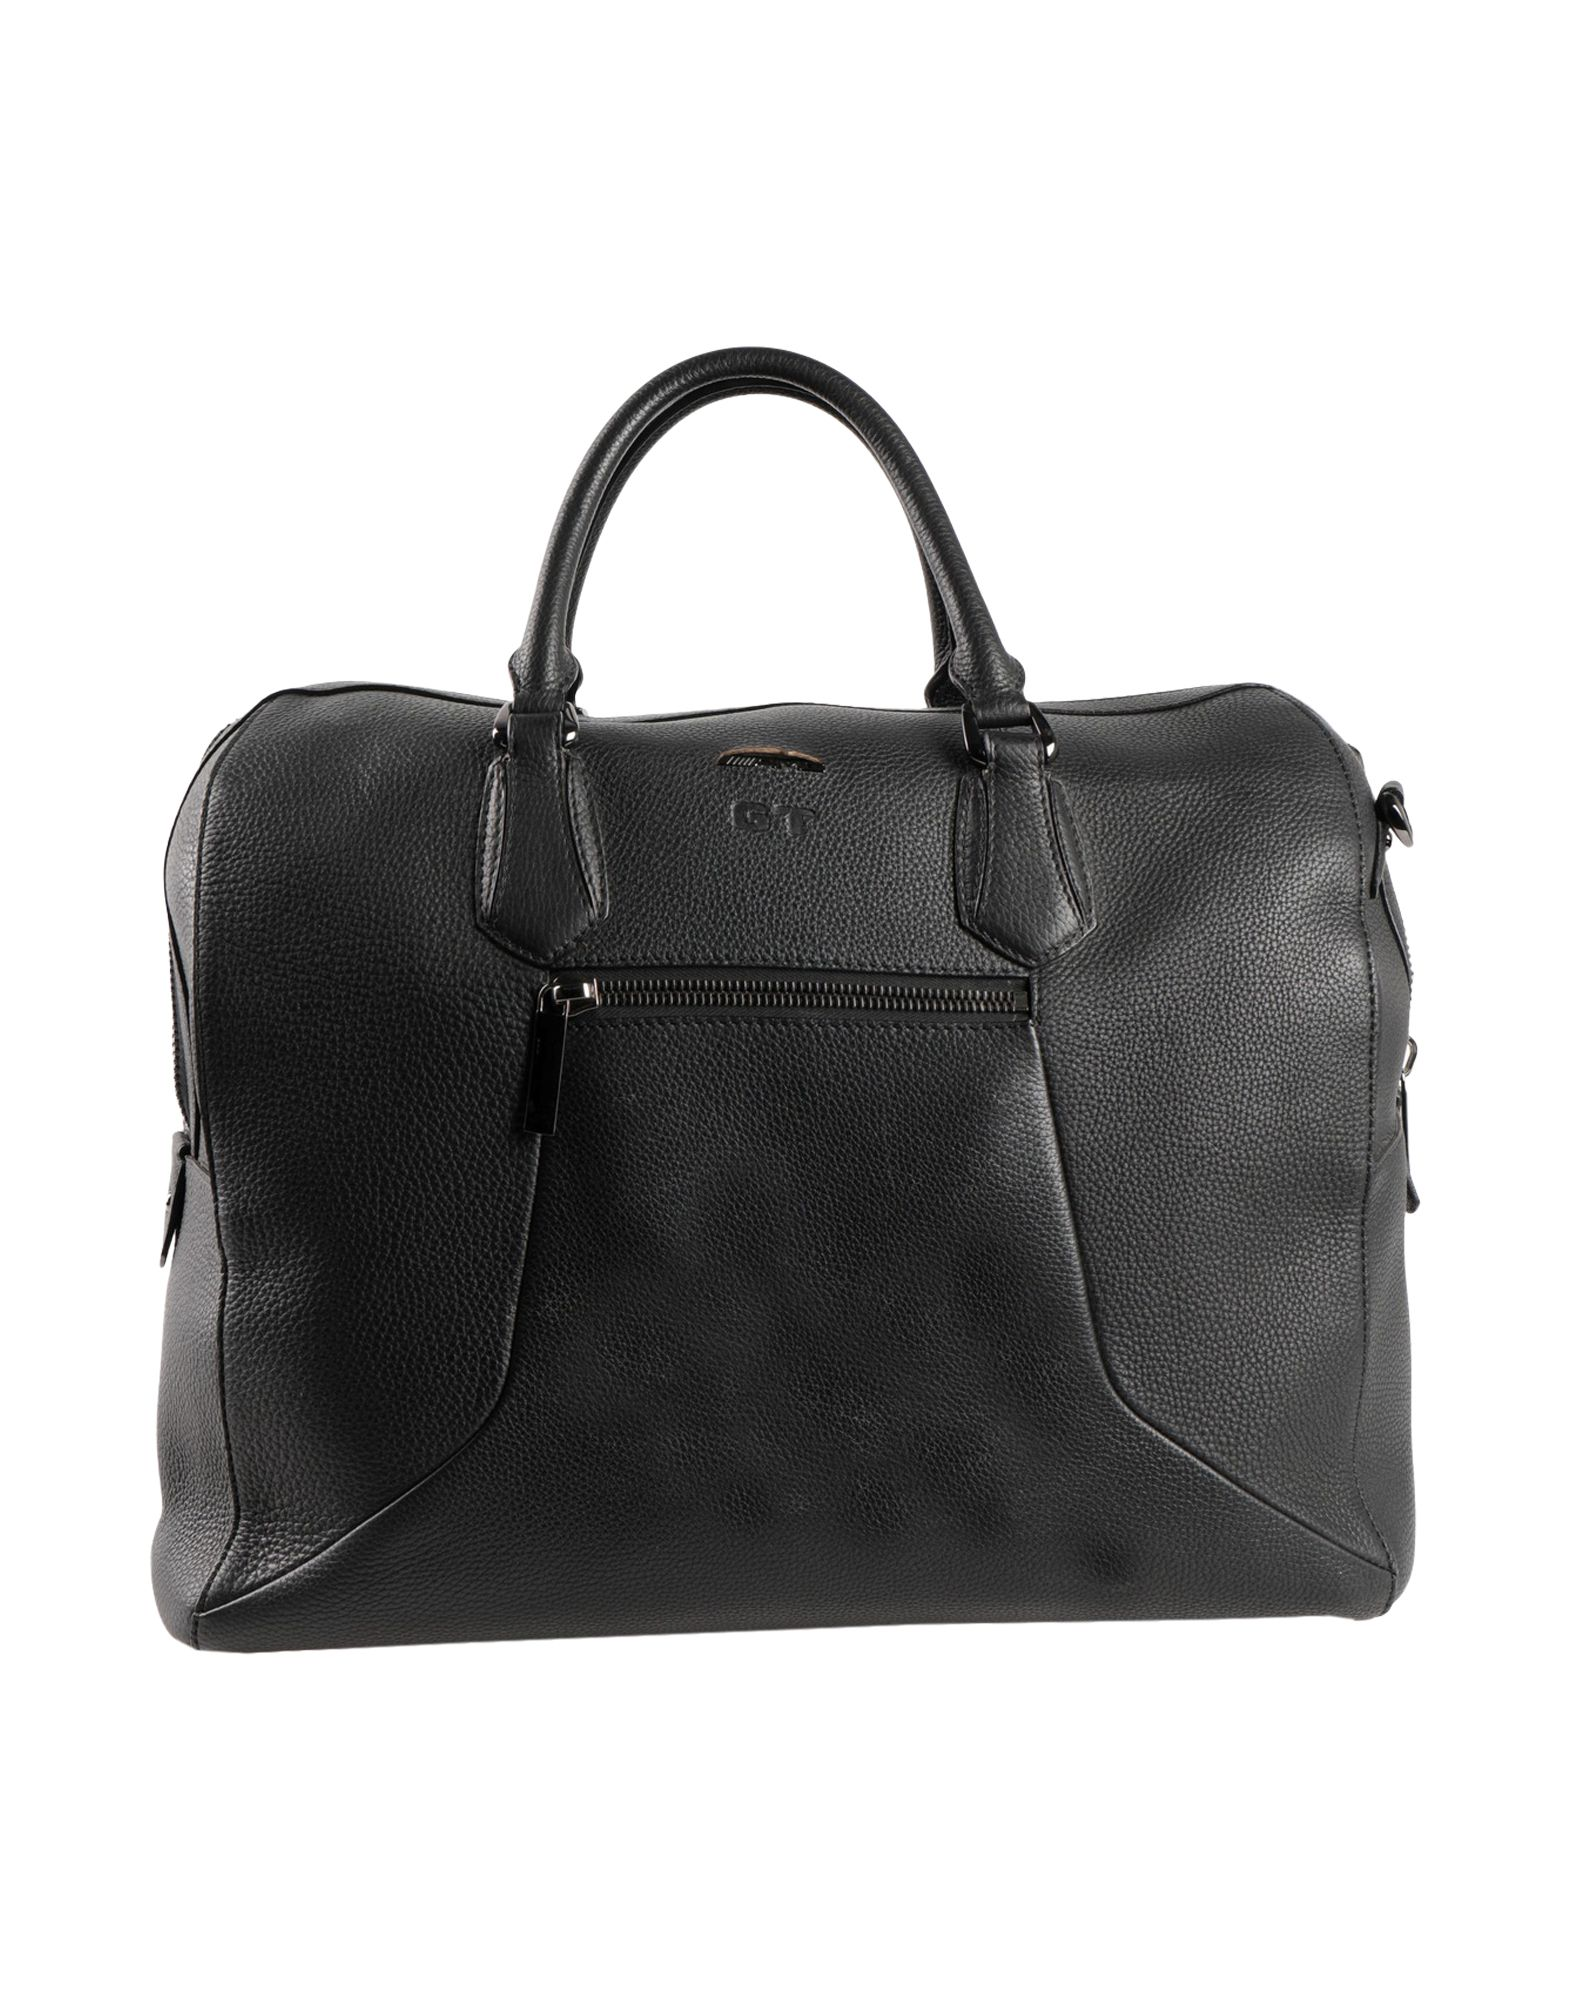 SANTONI Travel duffel bags. leather, textured leather, logo, solid color, double handle, removable shoulder strap, internal pockets, fully lined, zipper closure, external pockets, bottom with studs, contains non-textile parts of animal origin. Soft Leather